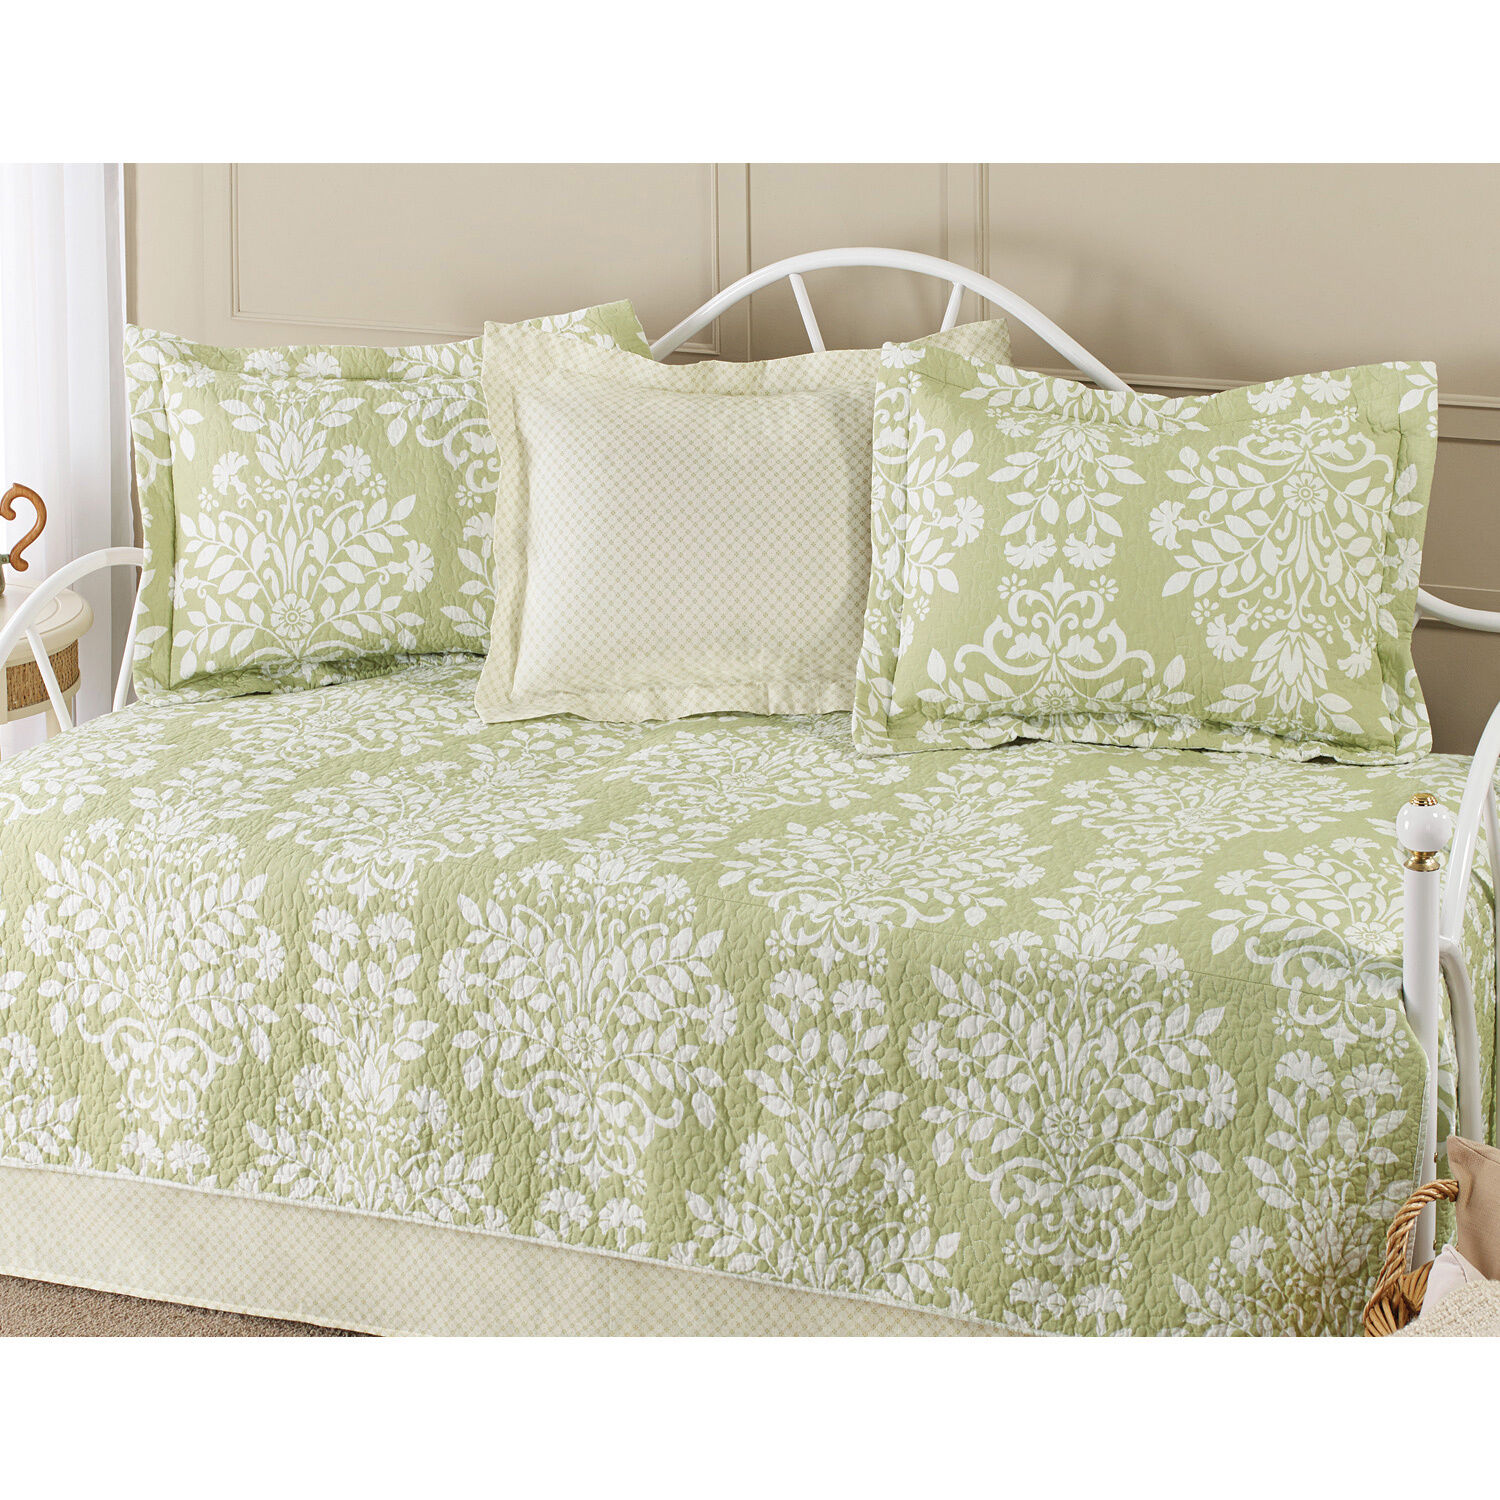 BEAUTIFUL 5PC WHITE SAGE GREEN LEAF FLORAL DAY BED TEXTURED DAYBED SET  NEW